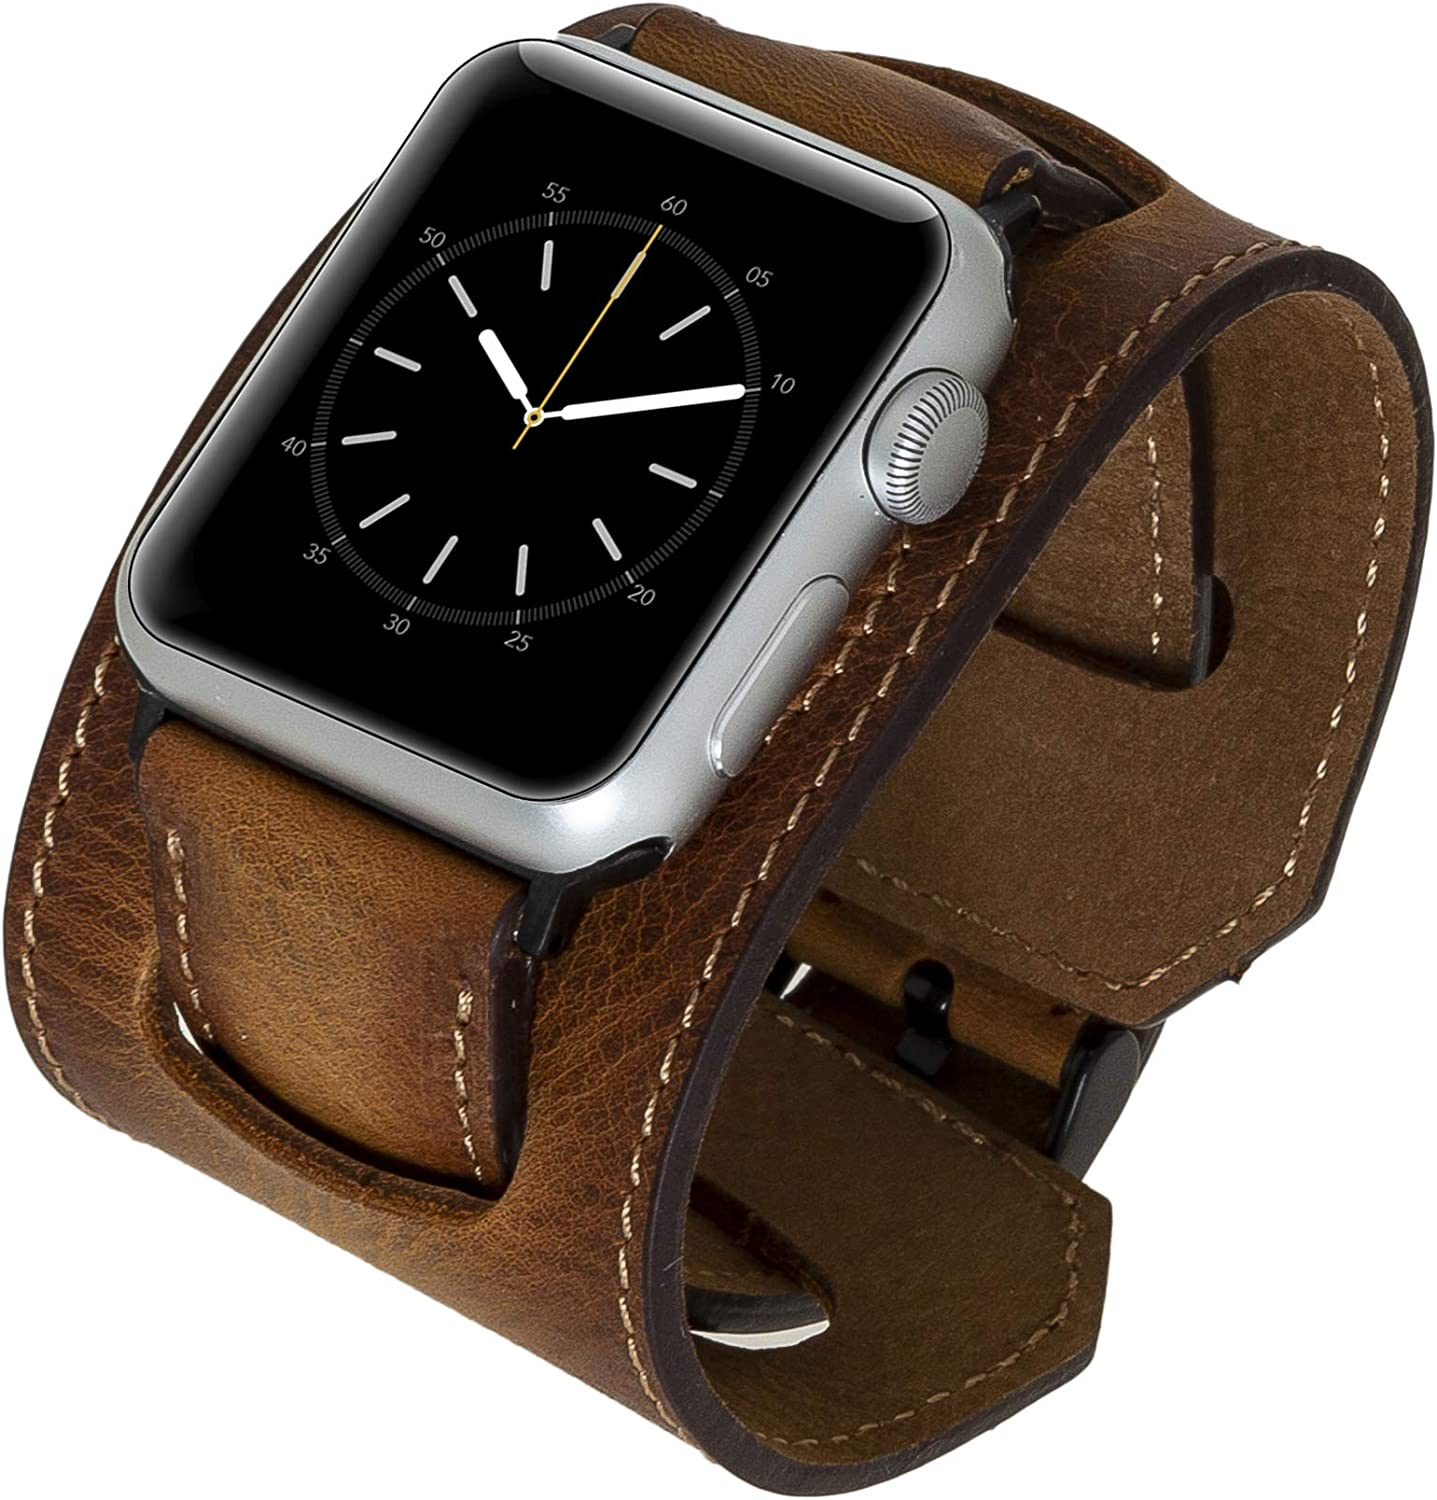 Venito Ancona Cuff Handmade Premium Leather Watch Band Compatible with The Newest Apple Watch iwatch Series 6 as Well as Series 1,2,3,4,5 (Antique Brown w/Black Stainless Steel Hardware, 38mm-40mm)